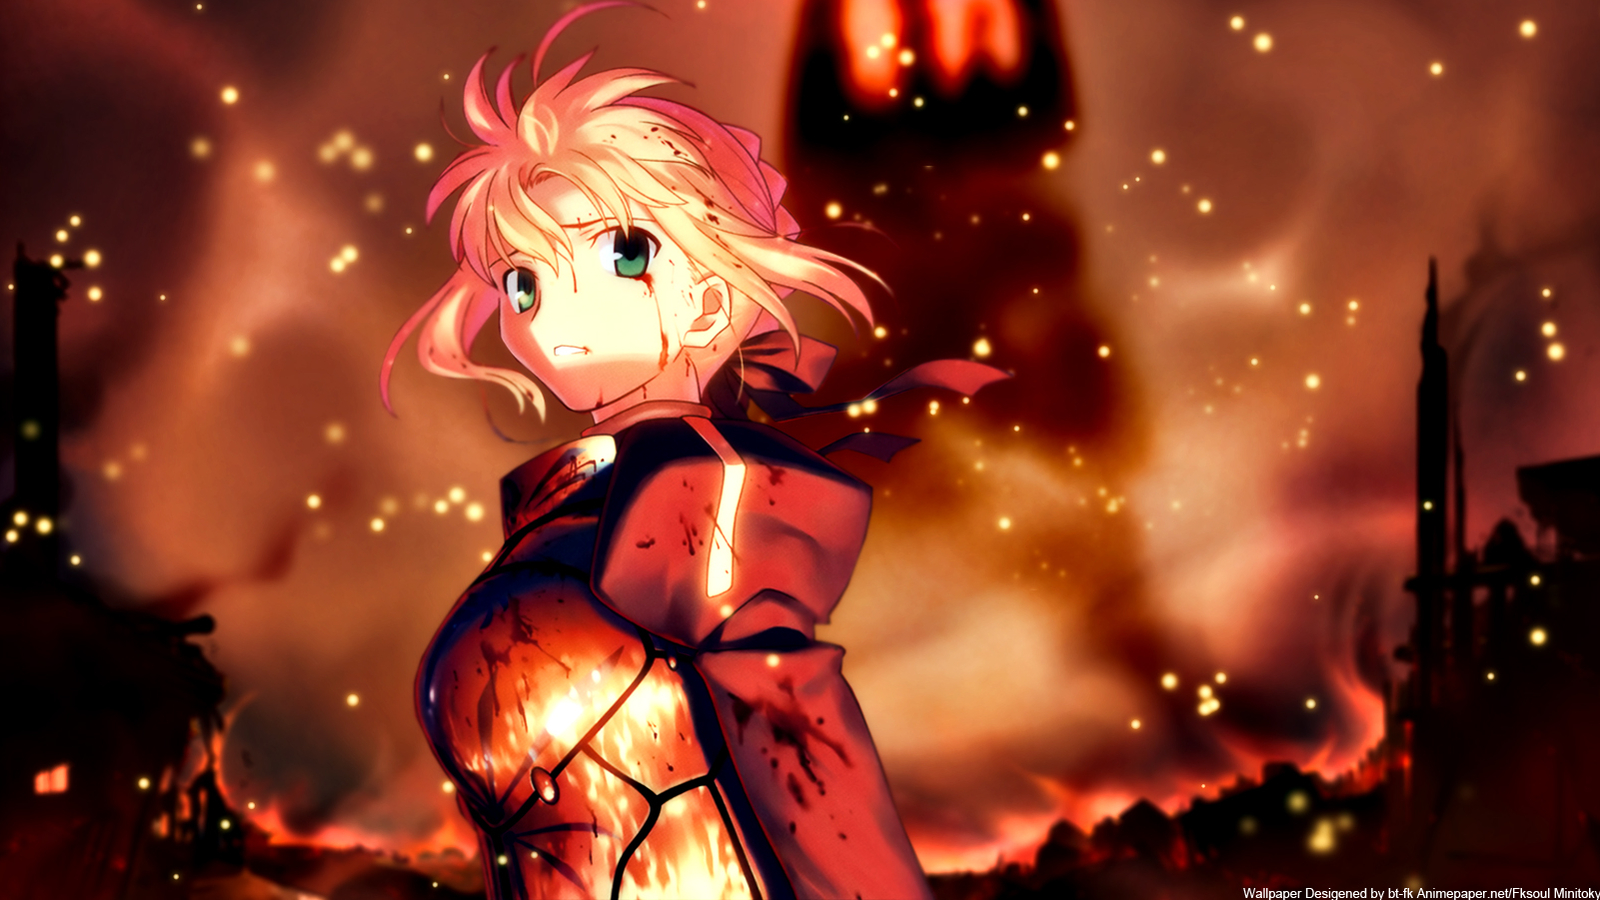 17 Best images about Fate Stay Night on Pinterest | To miss